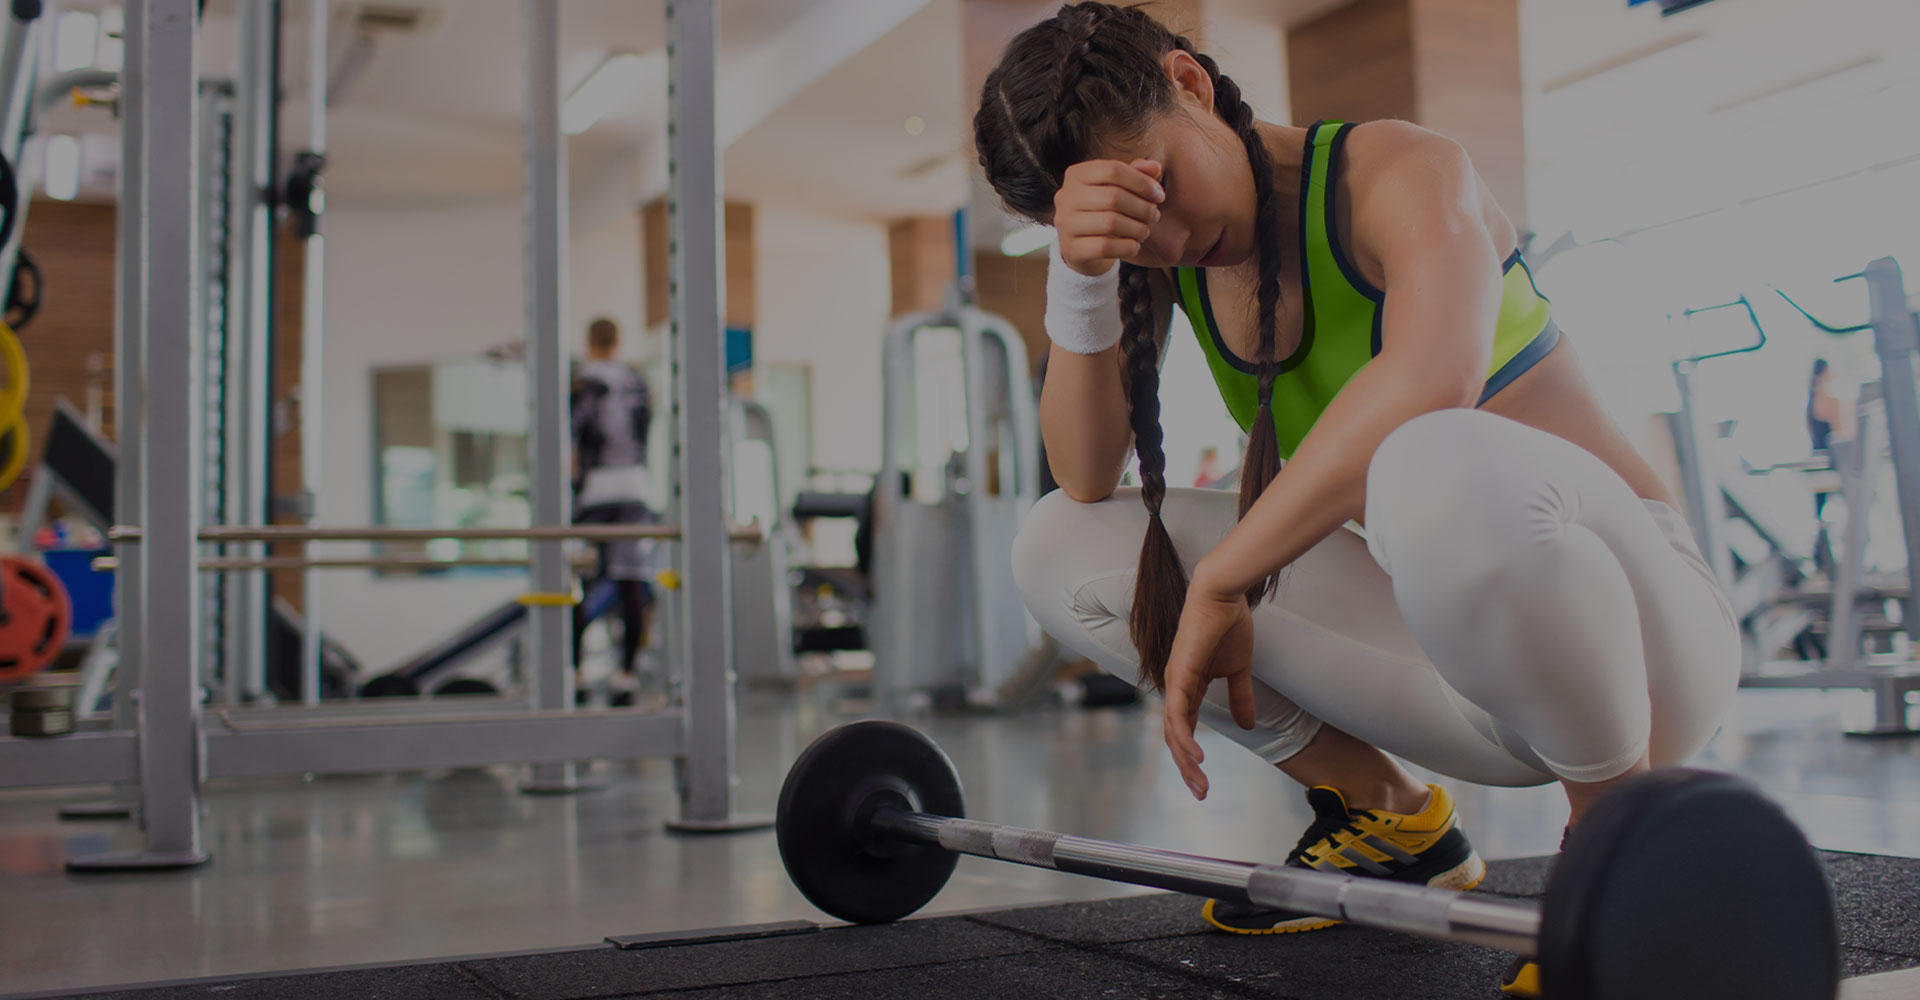 LoHi Athletic Club, in Denver Colorado, is offering $0 enrollment fees including 3 personal training sessions for only $89/month in October, 2021